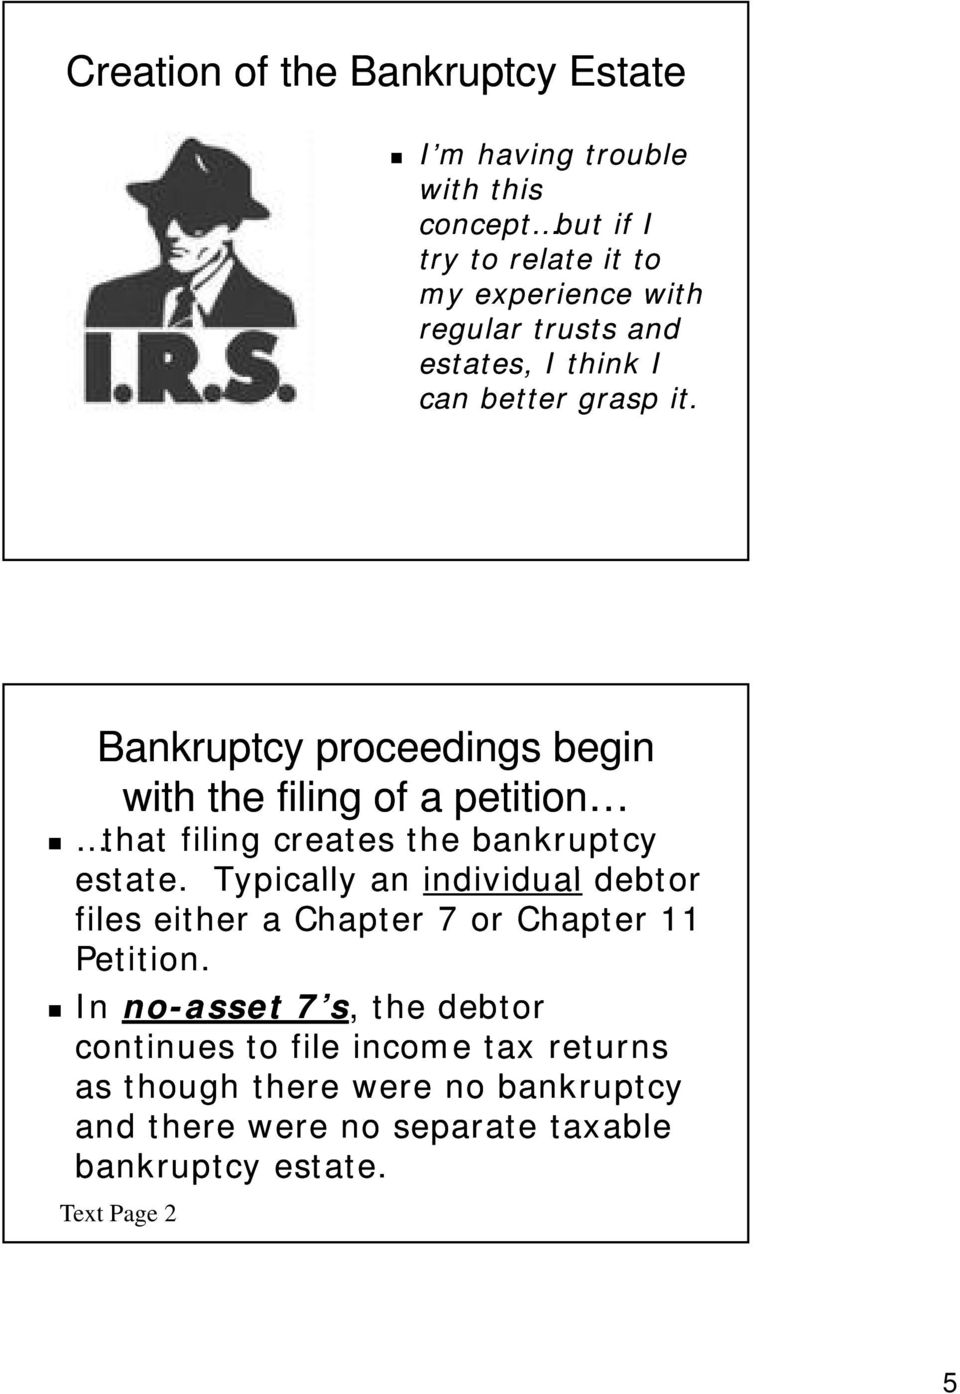 Bankruptcy proceedings begin with the filing of a petition that filing creates the bankruptcy estate.